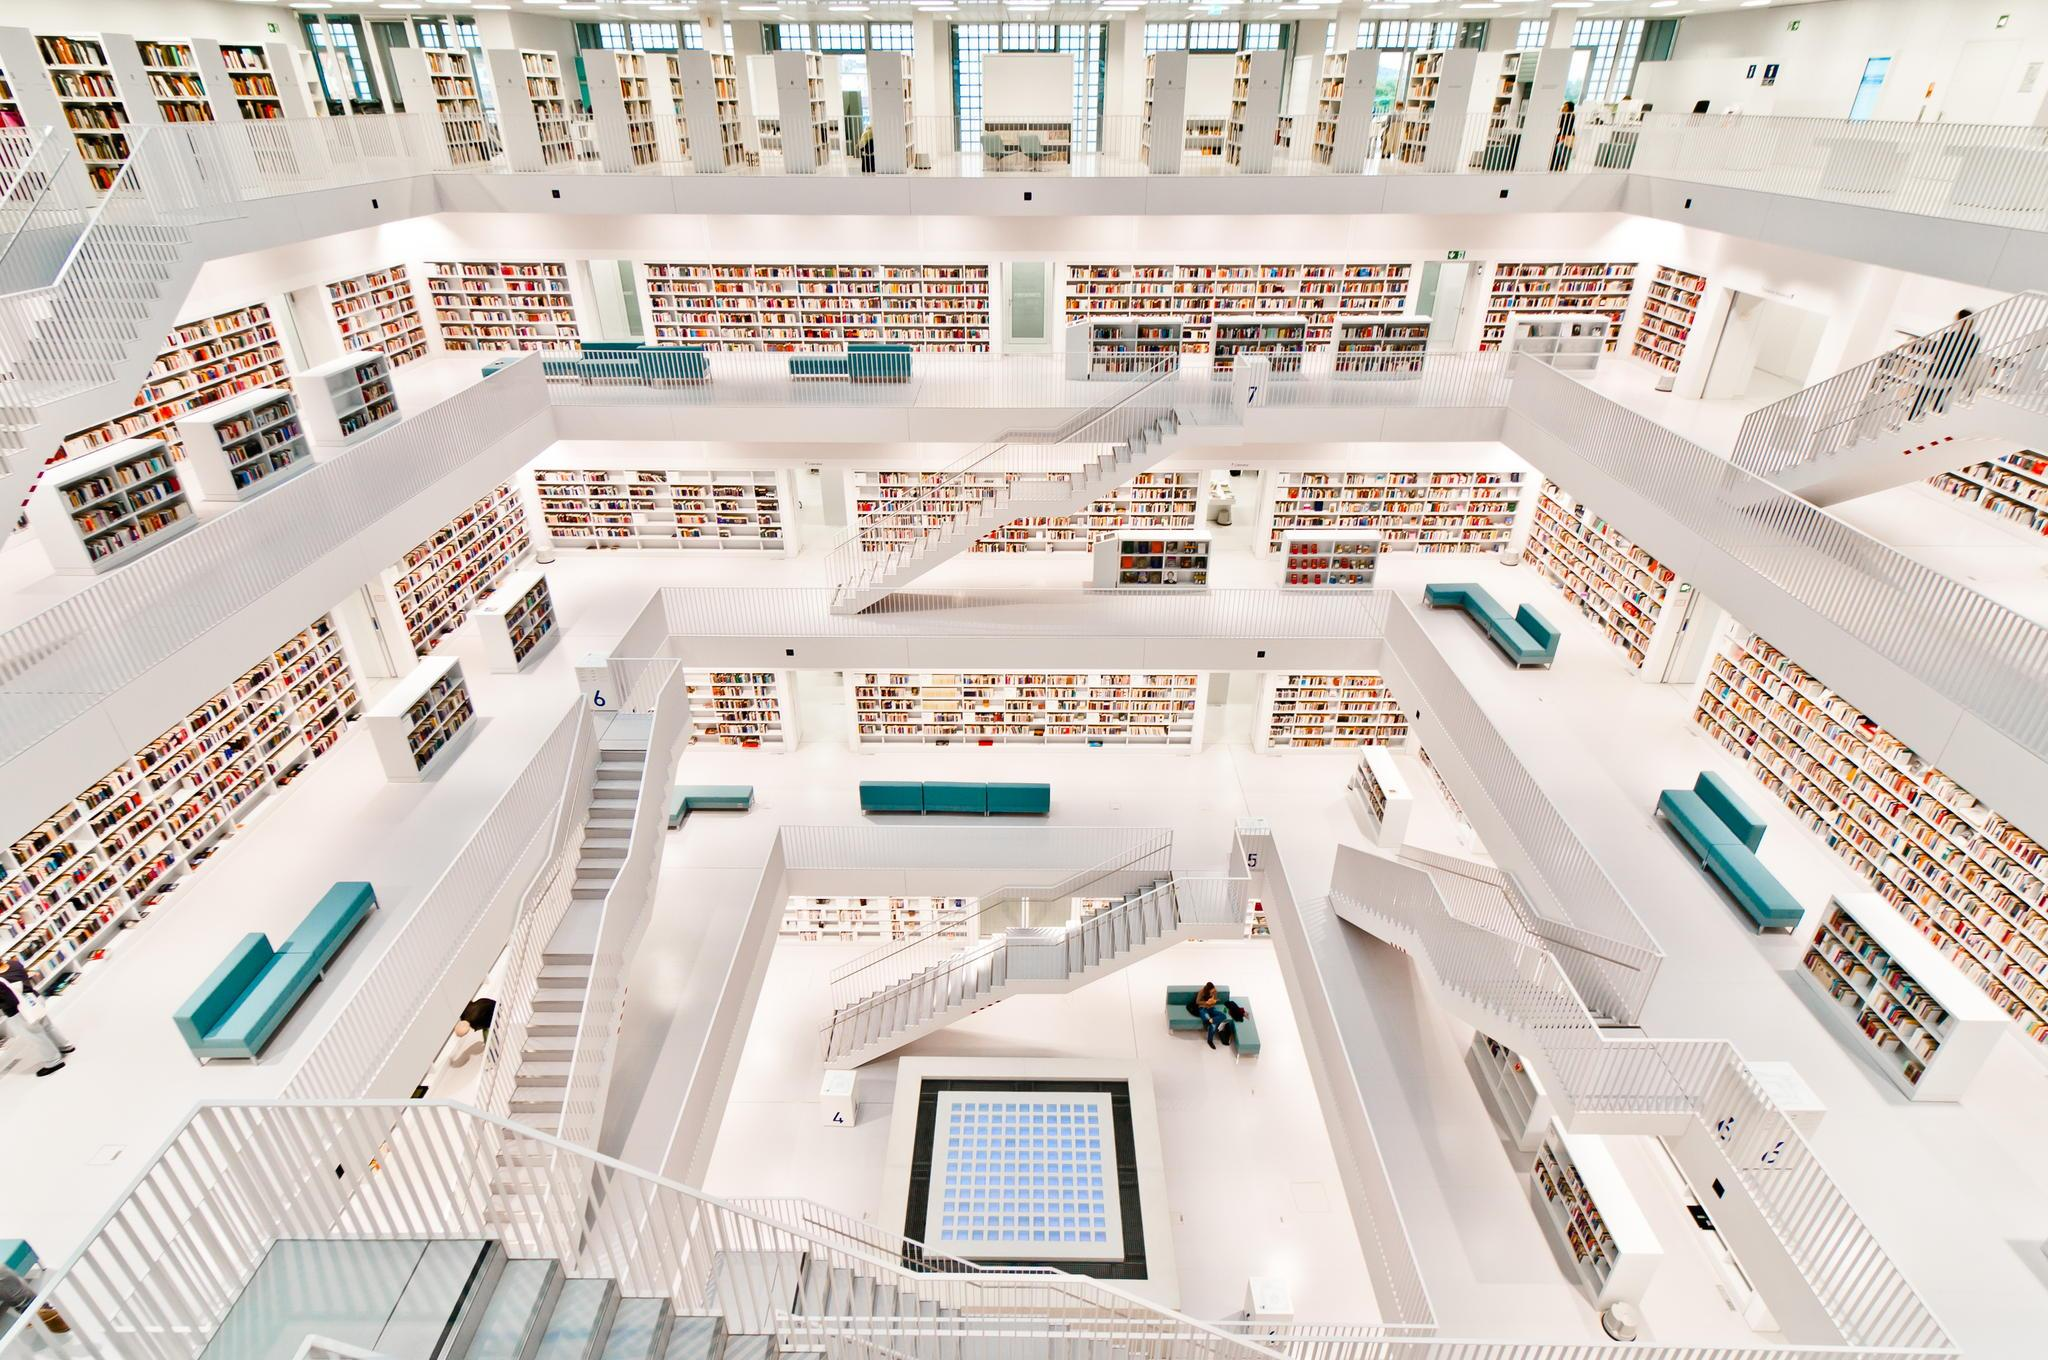 This is the public Library in Stuttgart, Germany. Fancy a visit? http://t.co/Ls1vxYTW90